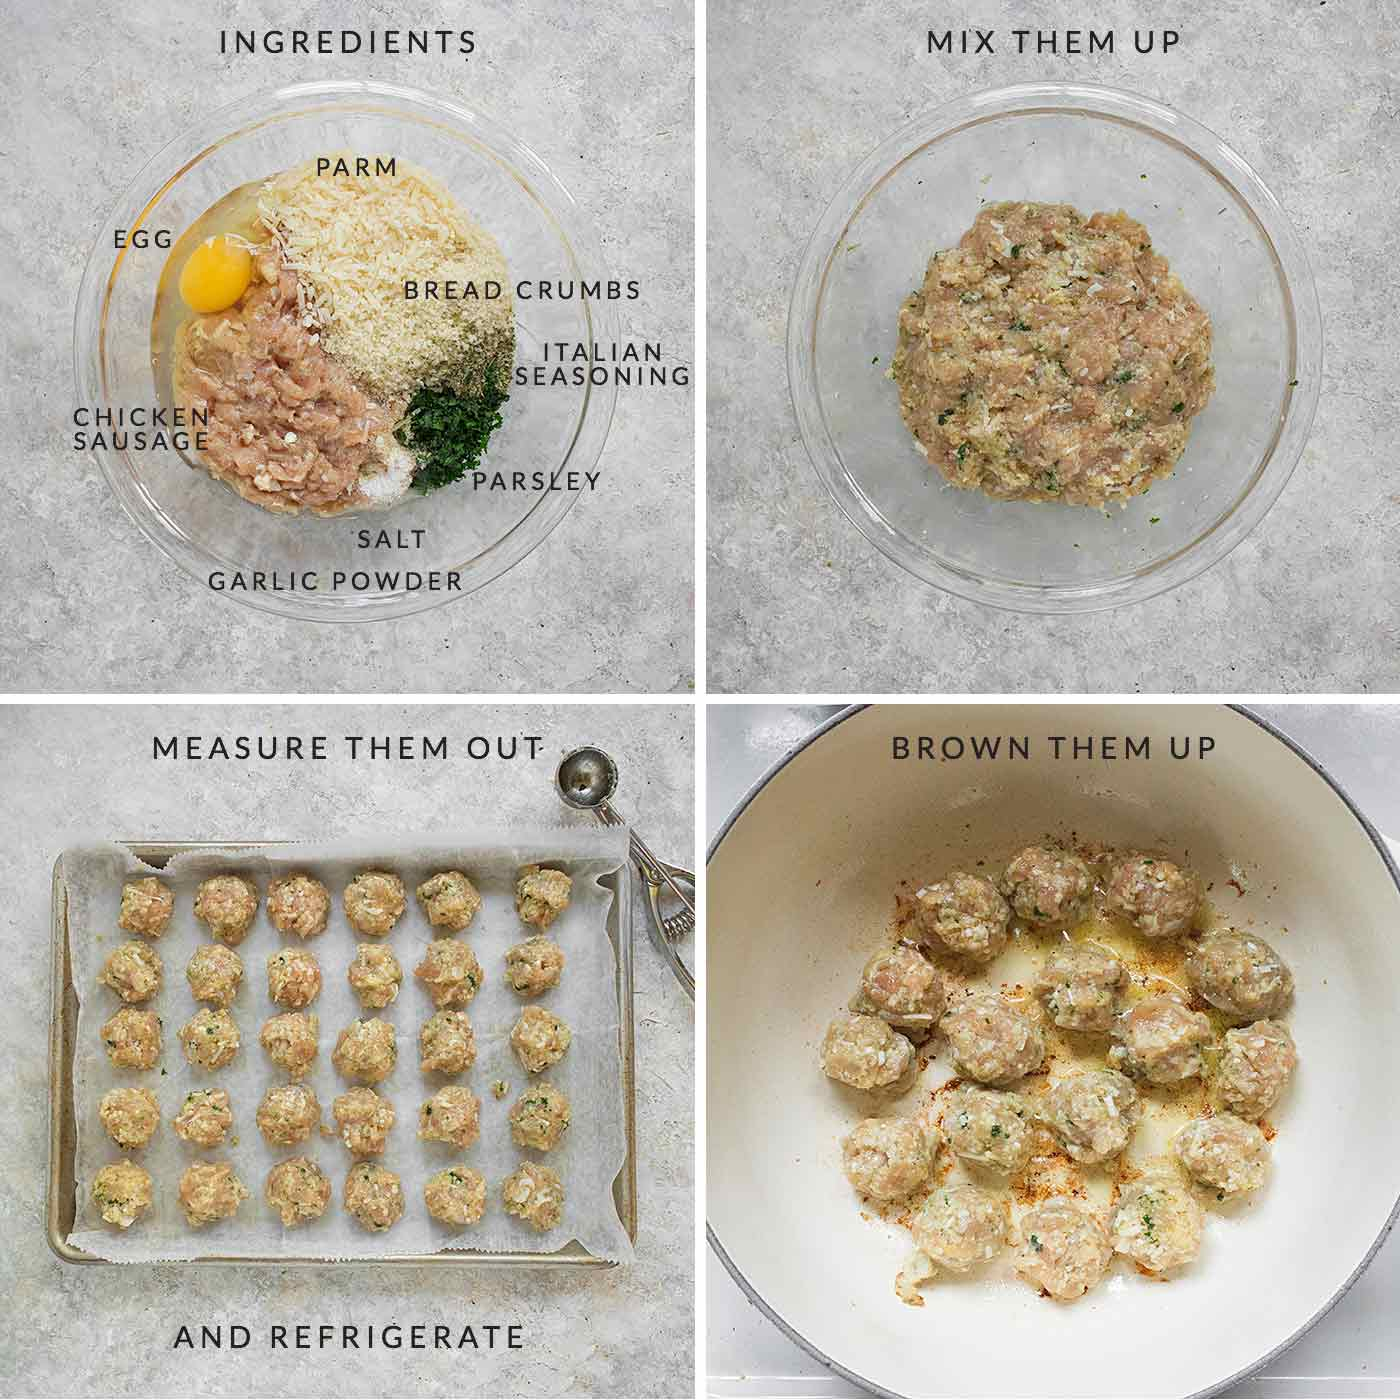 Steps for preparing the chicken sausage meatballs